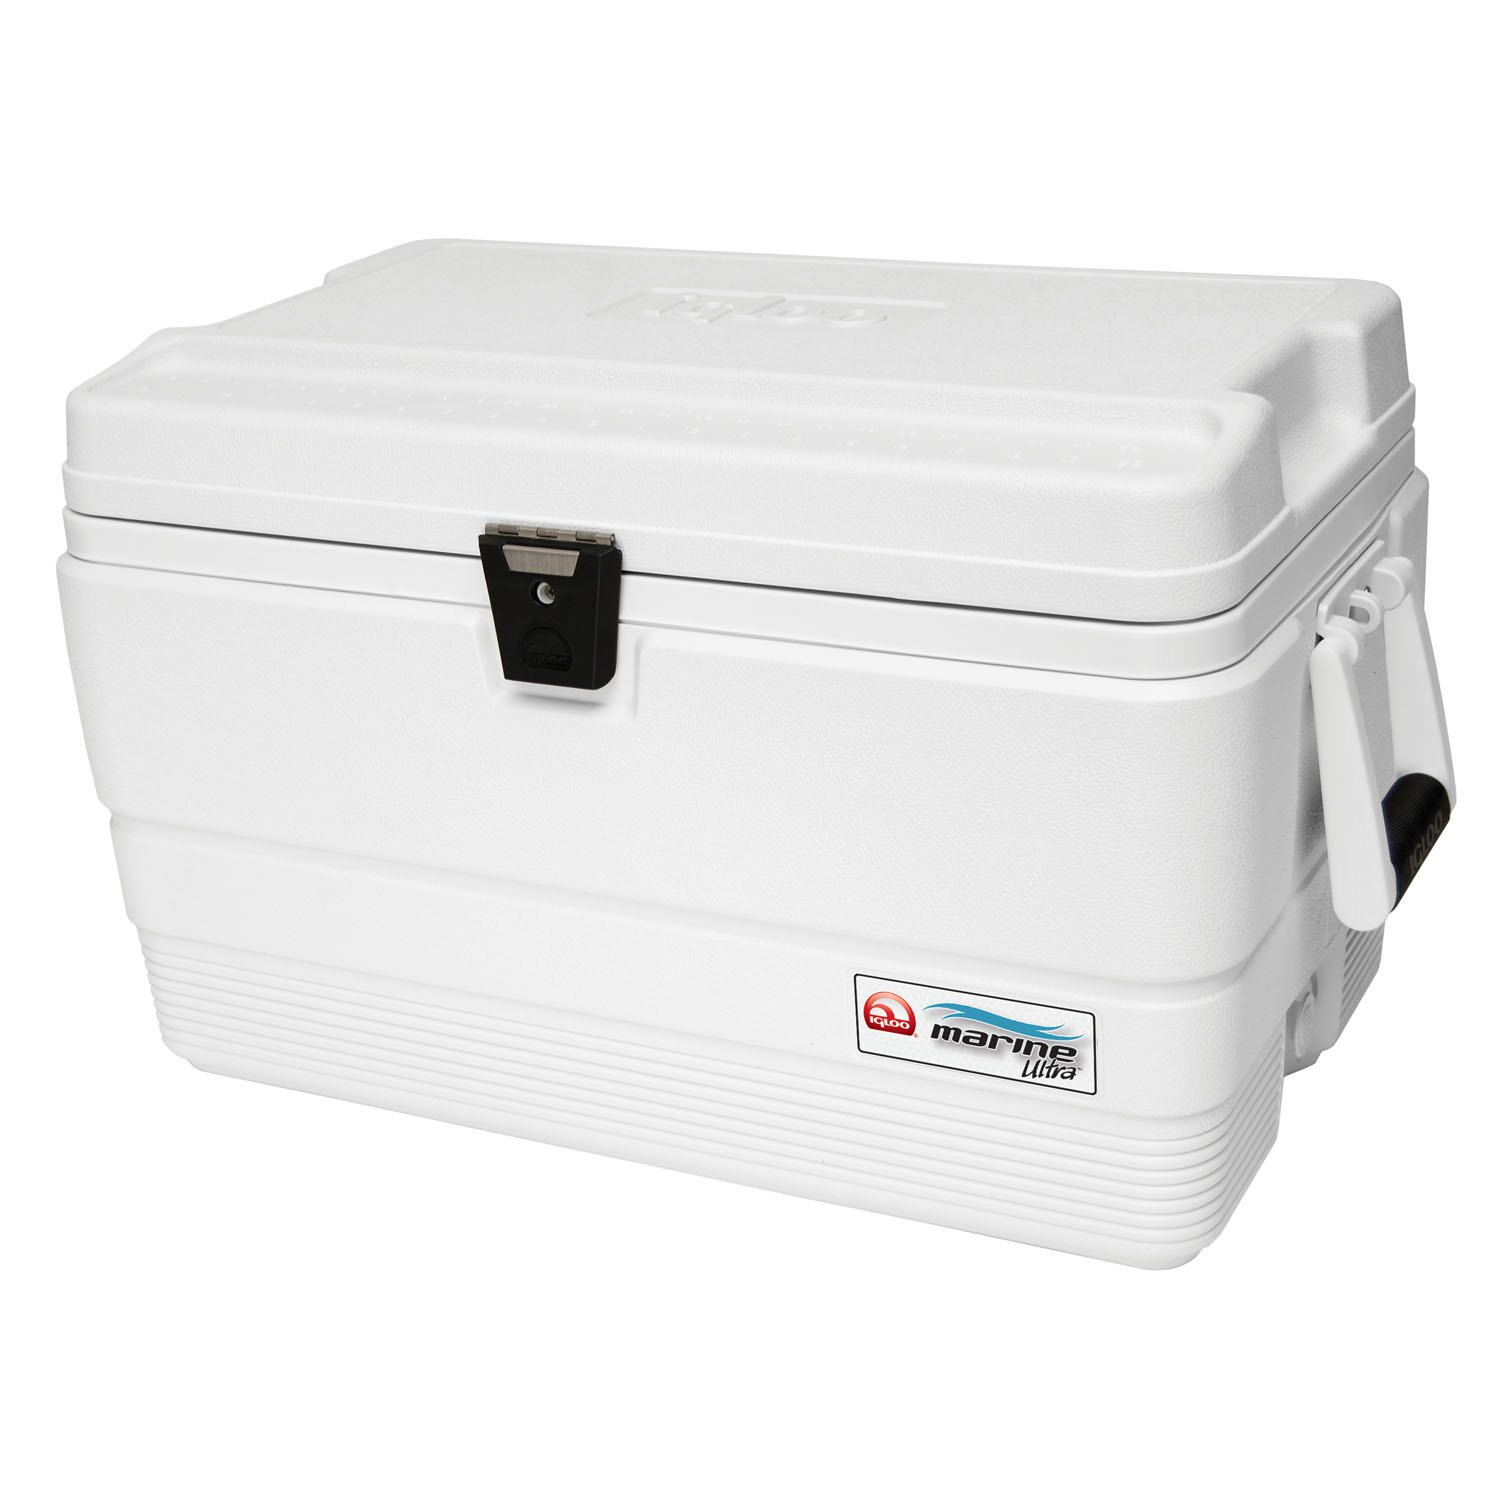 IGLOO MARINE ULTRA BEVERAGE COOLER (128 QUART)